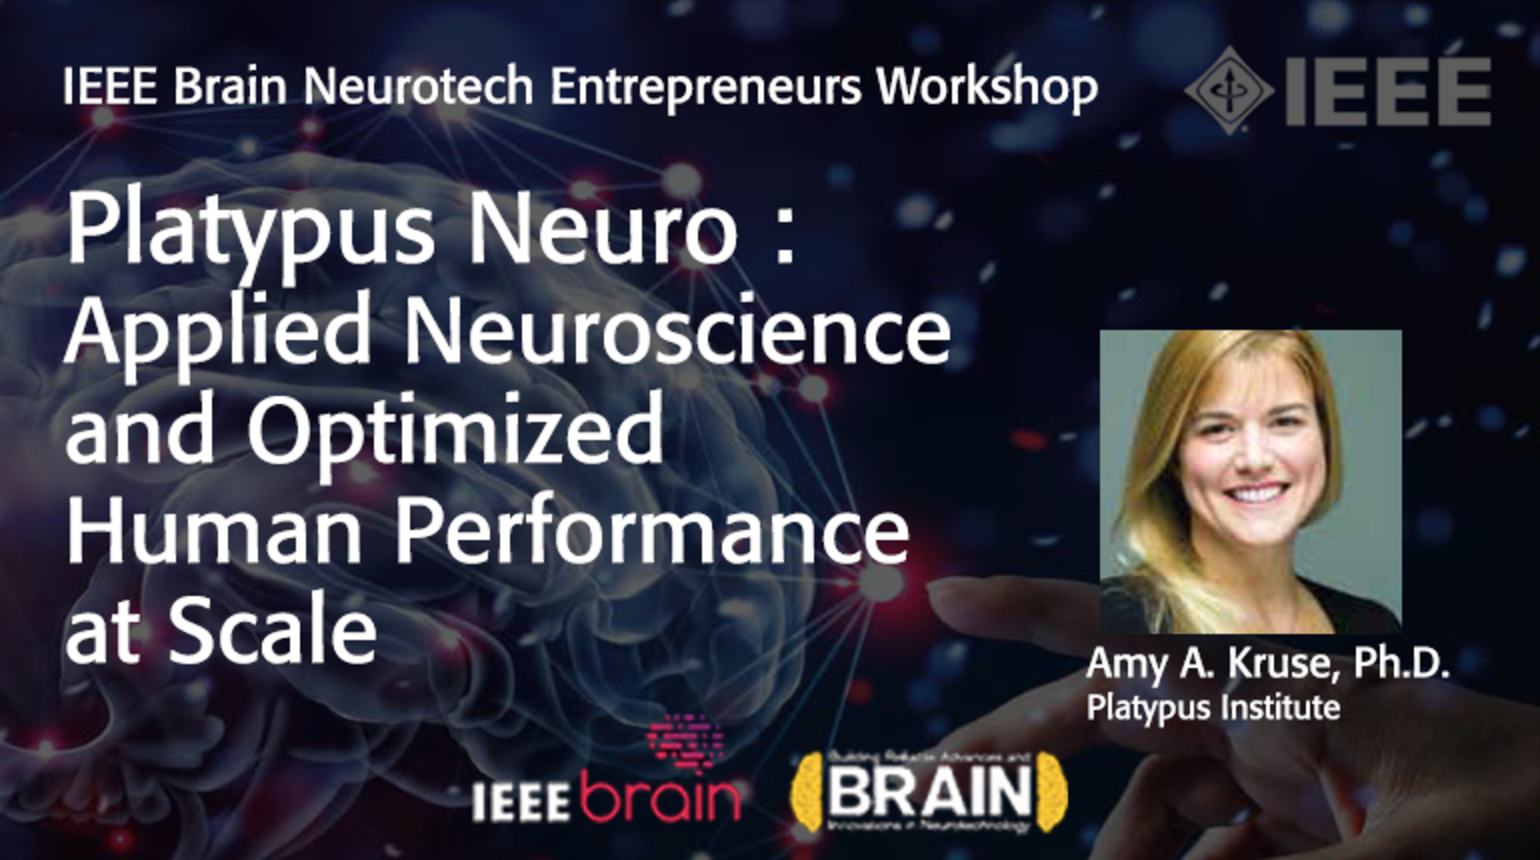 IEEE Brain: Platypus Neuro : Applied Neuroscience and Optimized Human Performance at Scale